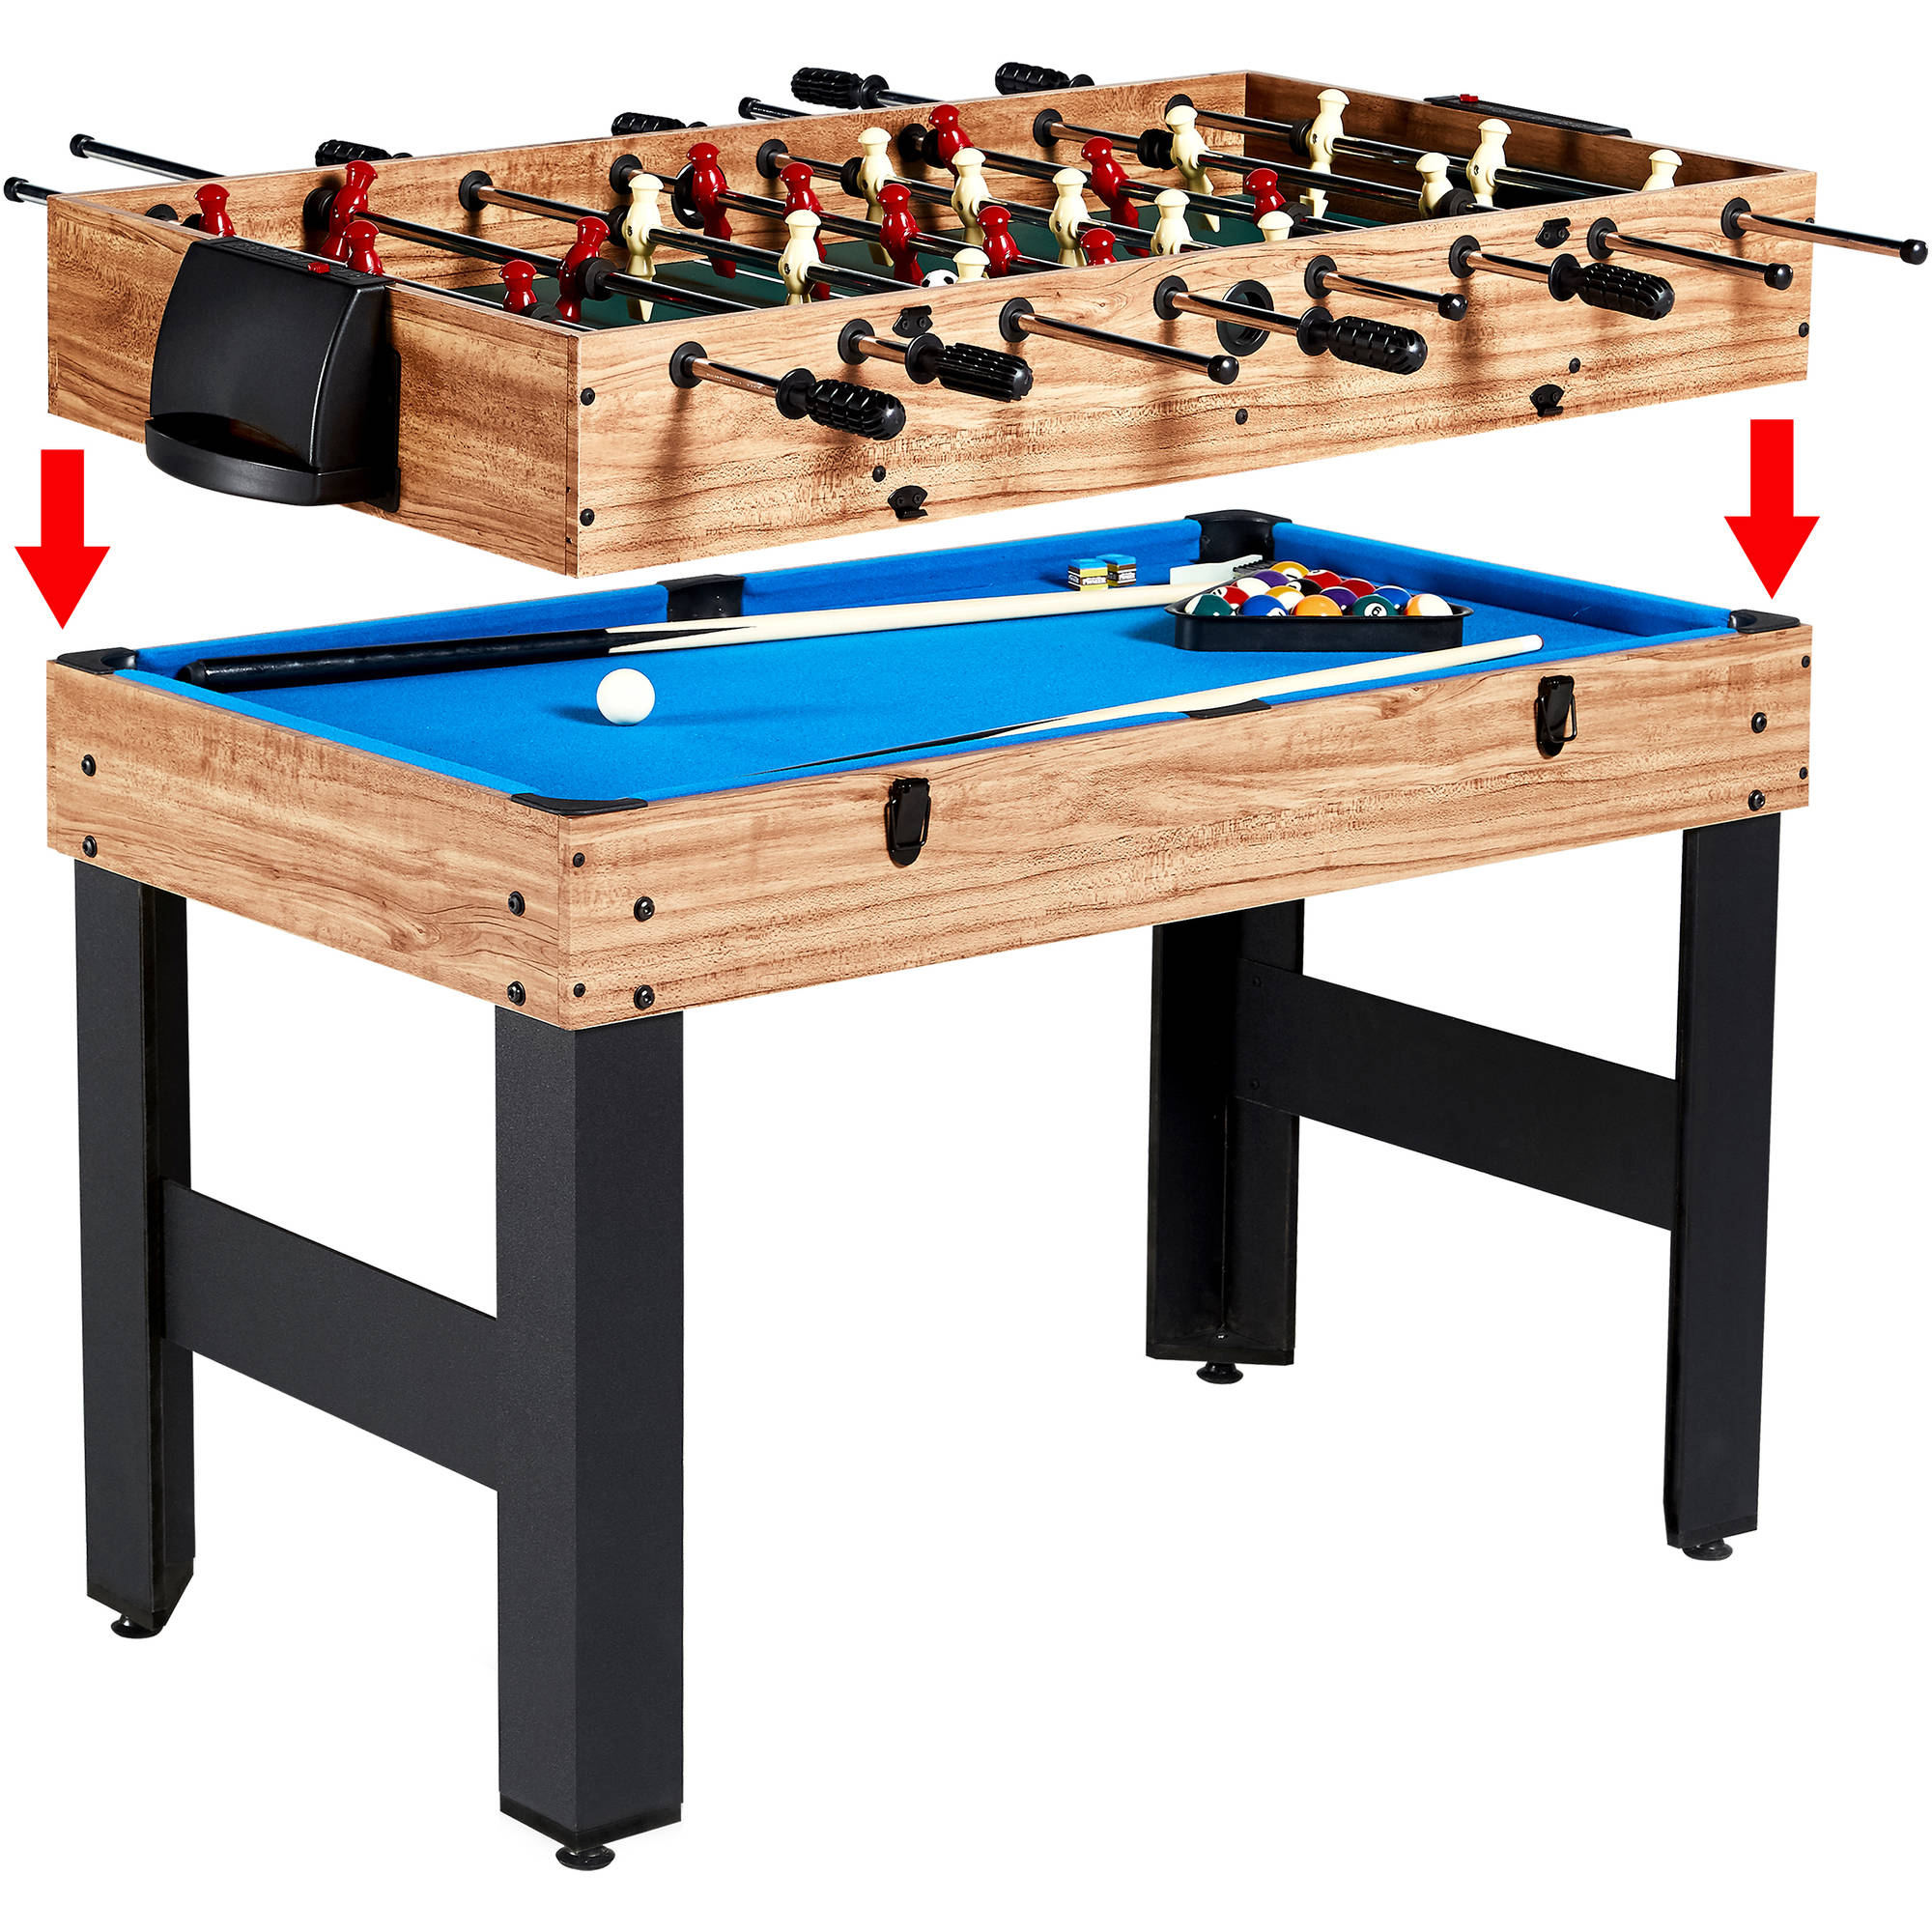 MD Sports 48 Inch 3 In 1 Combo Game Table, 3 Games With Billiards, Hockey  And Foosball   Walmart.com